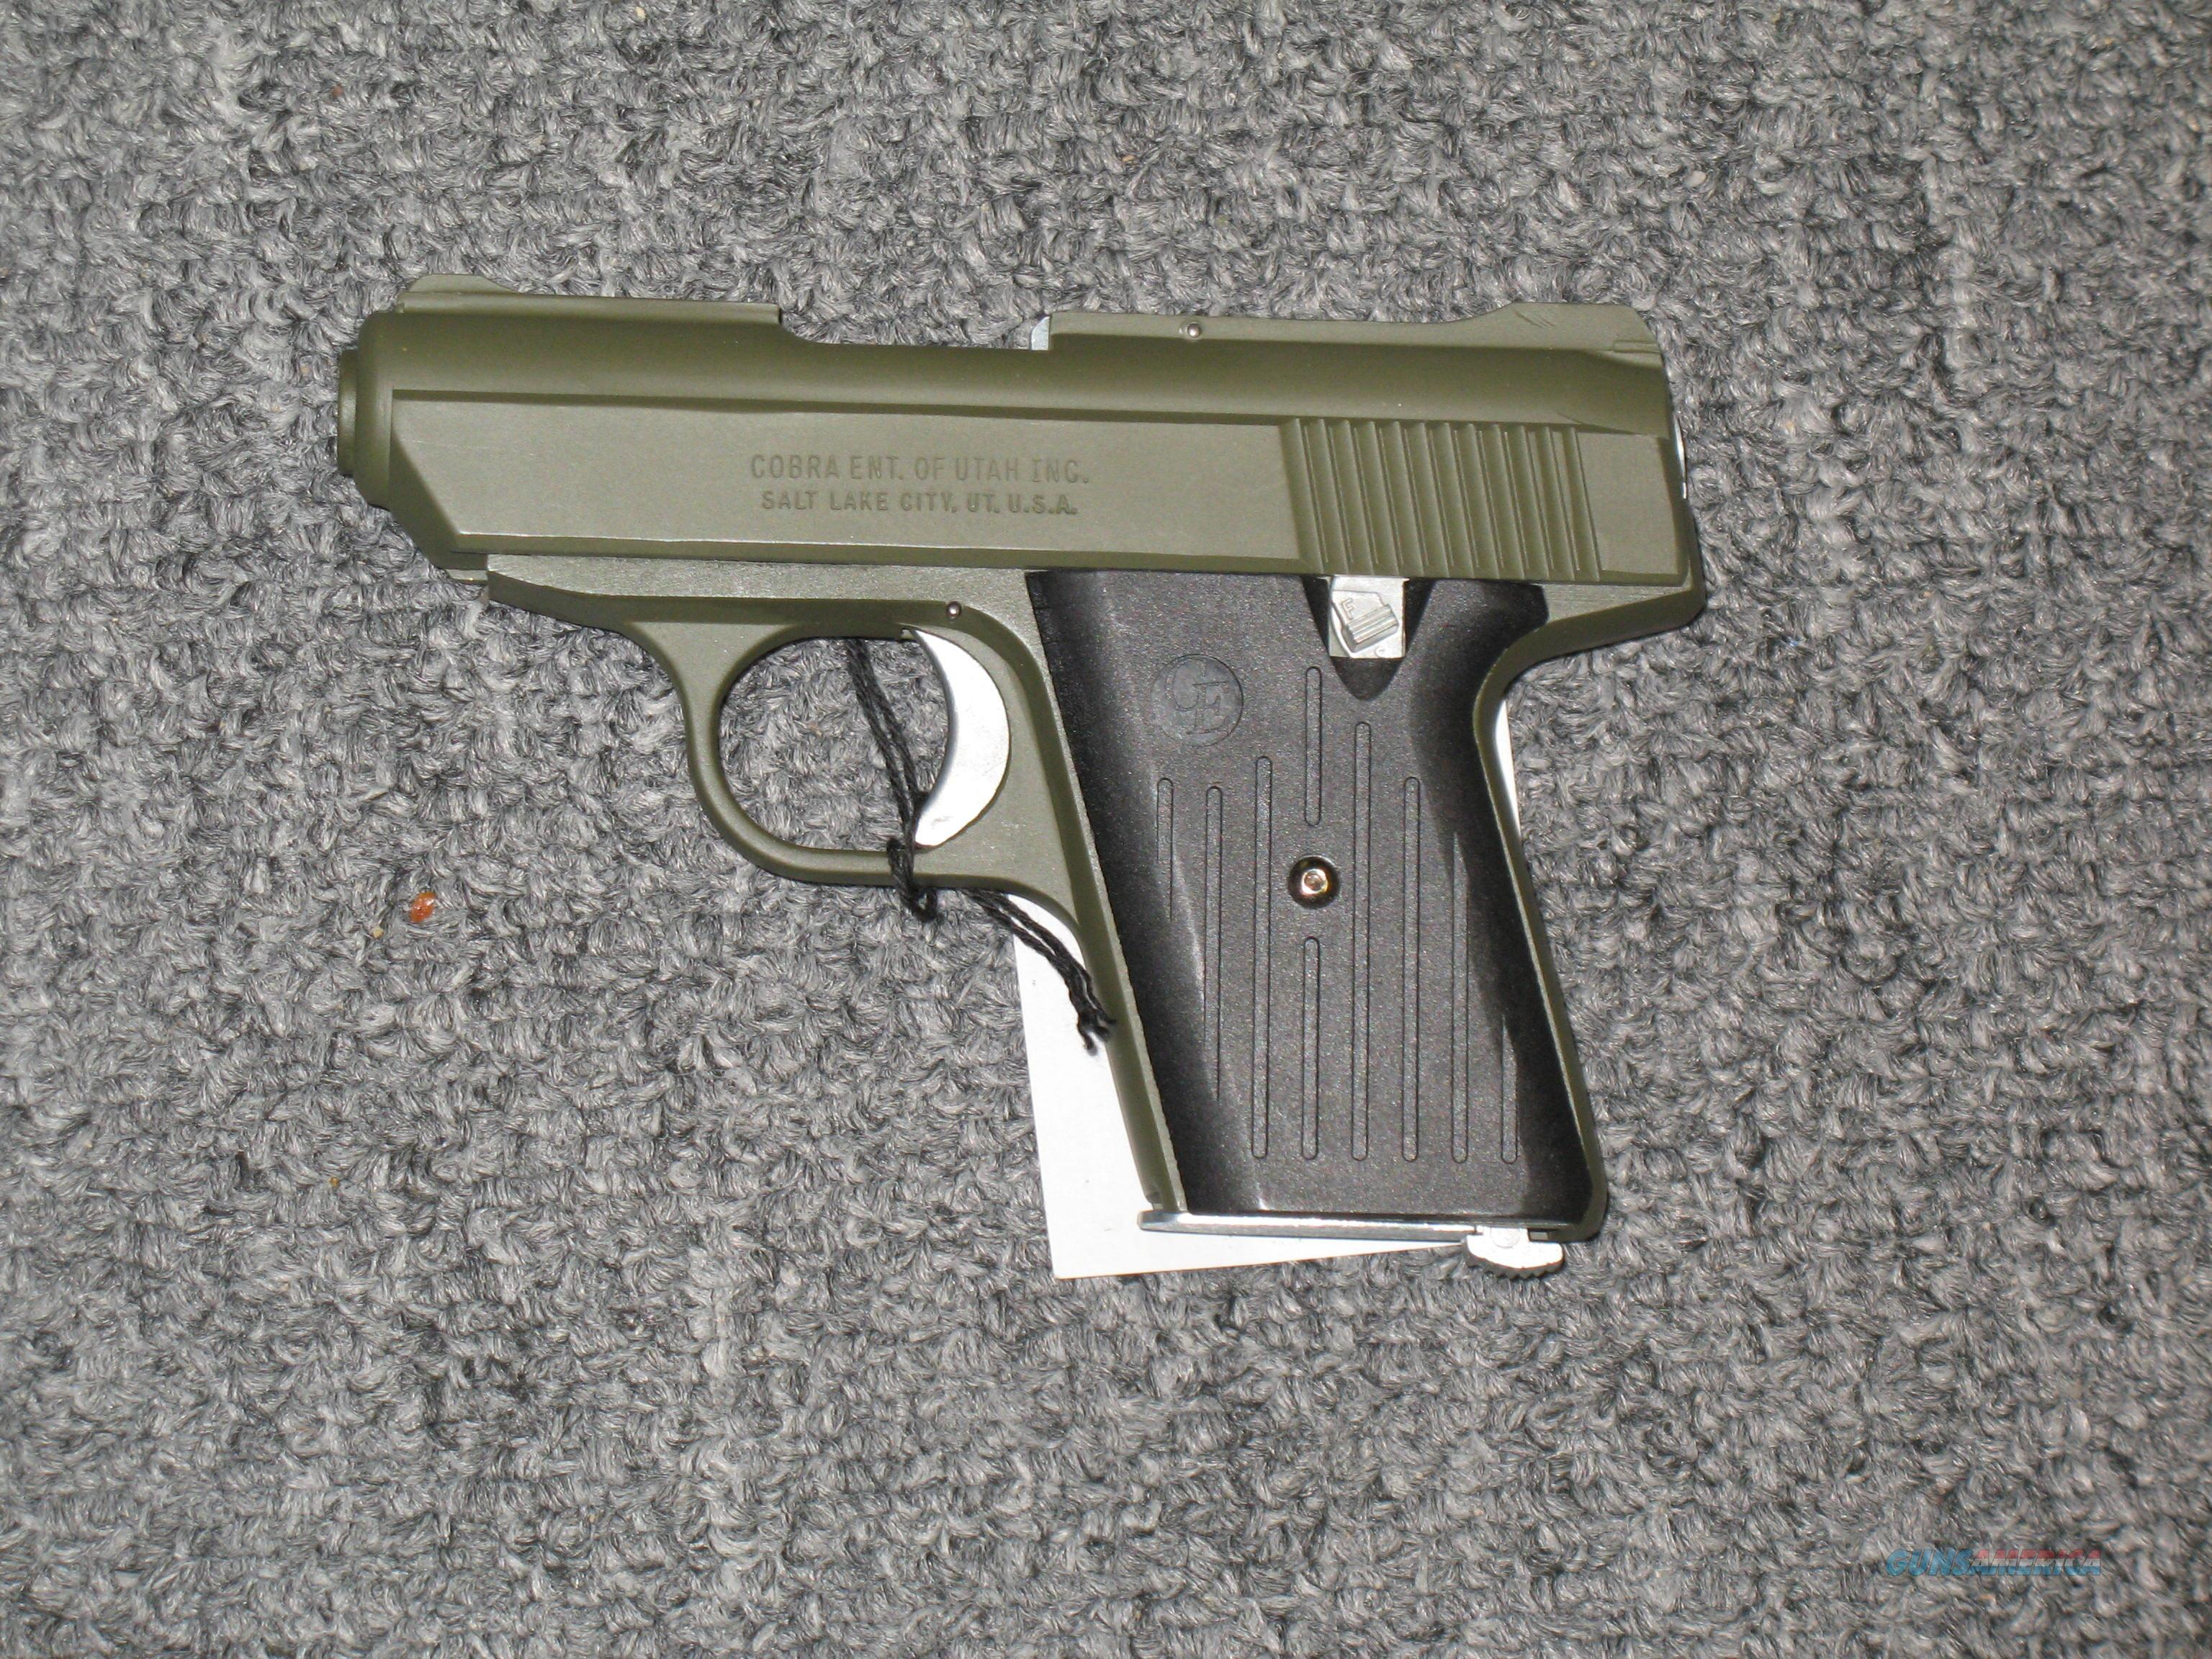 CA 32 w/OD Green finish  Guns > Pistols > Cobra Derringers